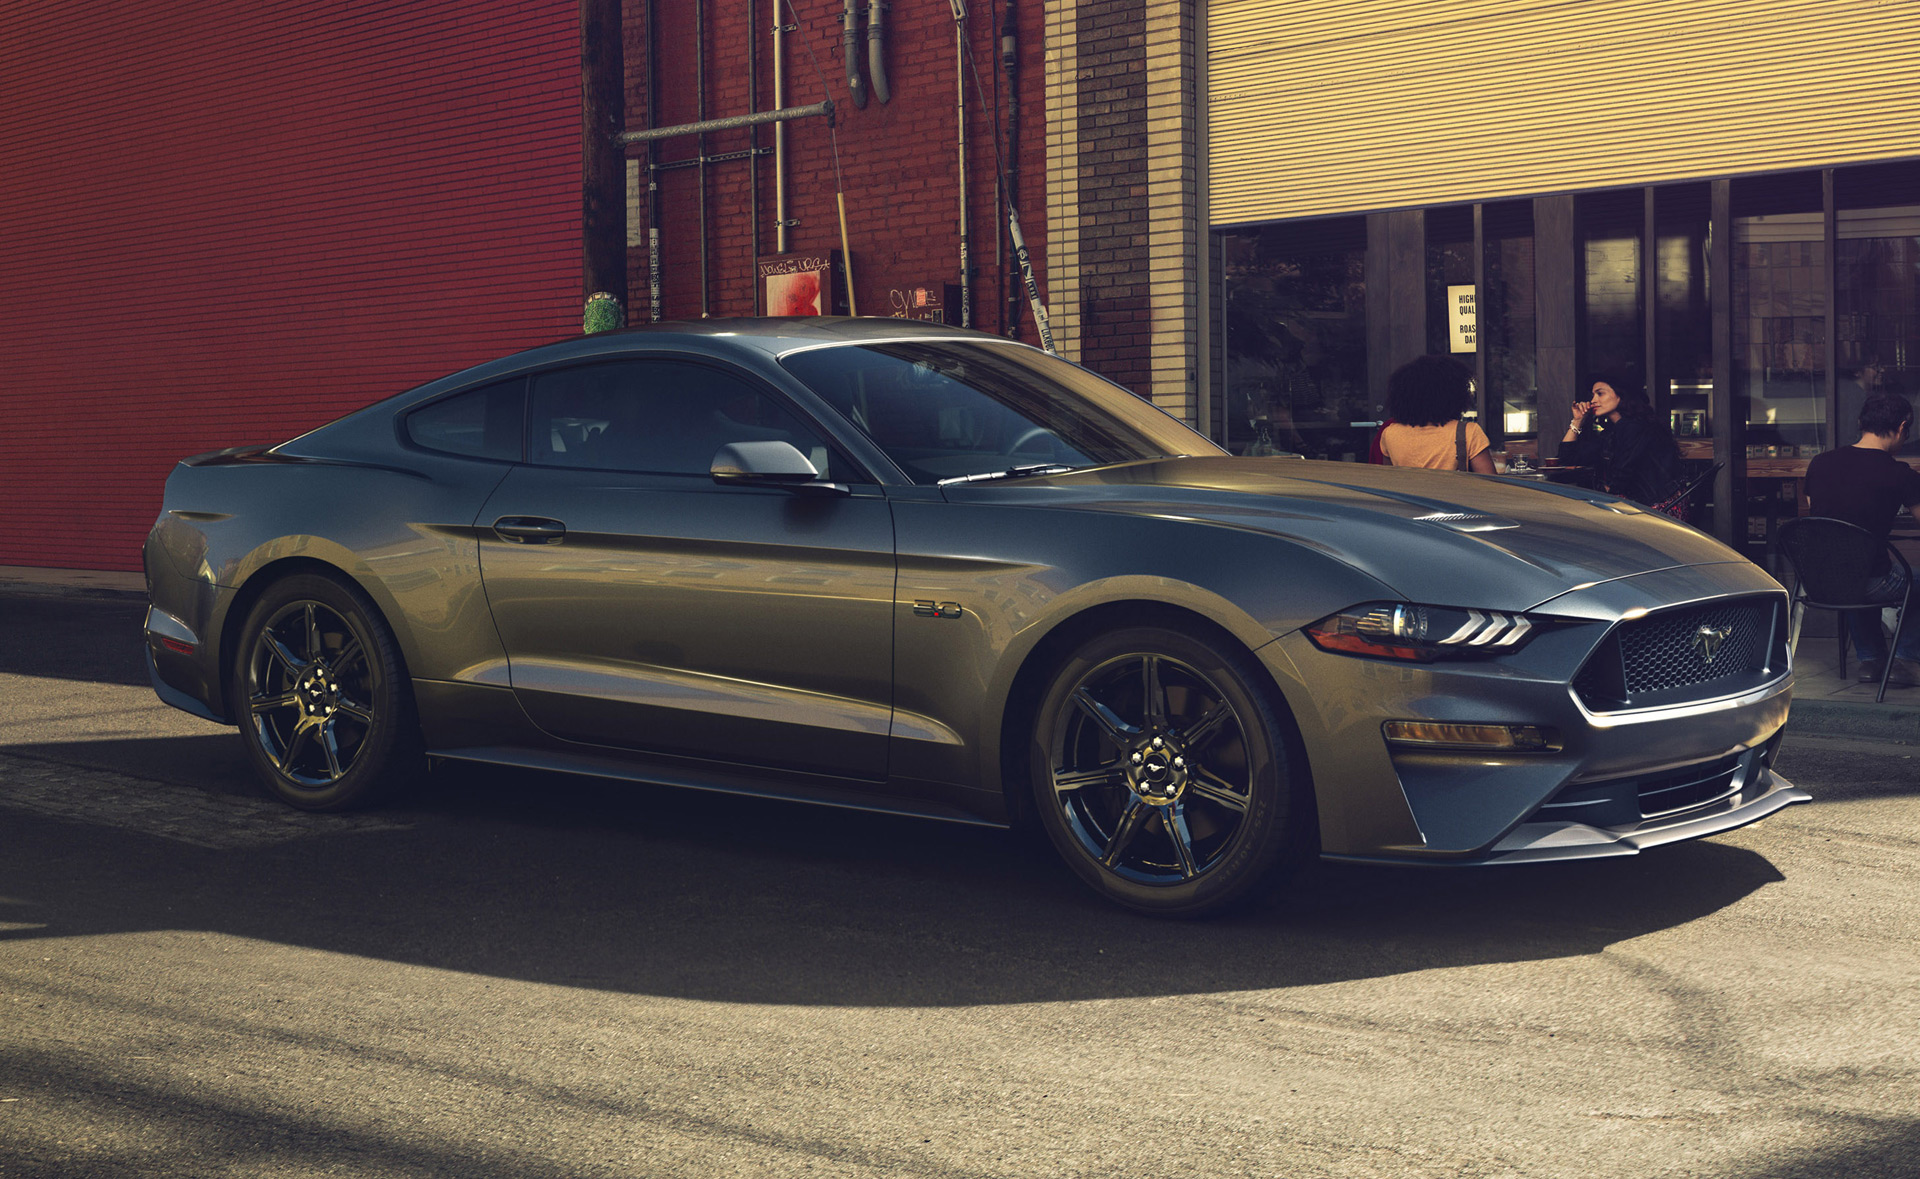 2018 ford mustang gt window sticker reveals 10 speed autos gas mileage gains